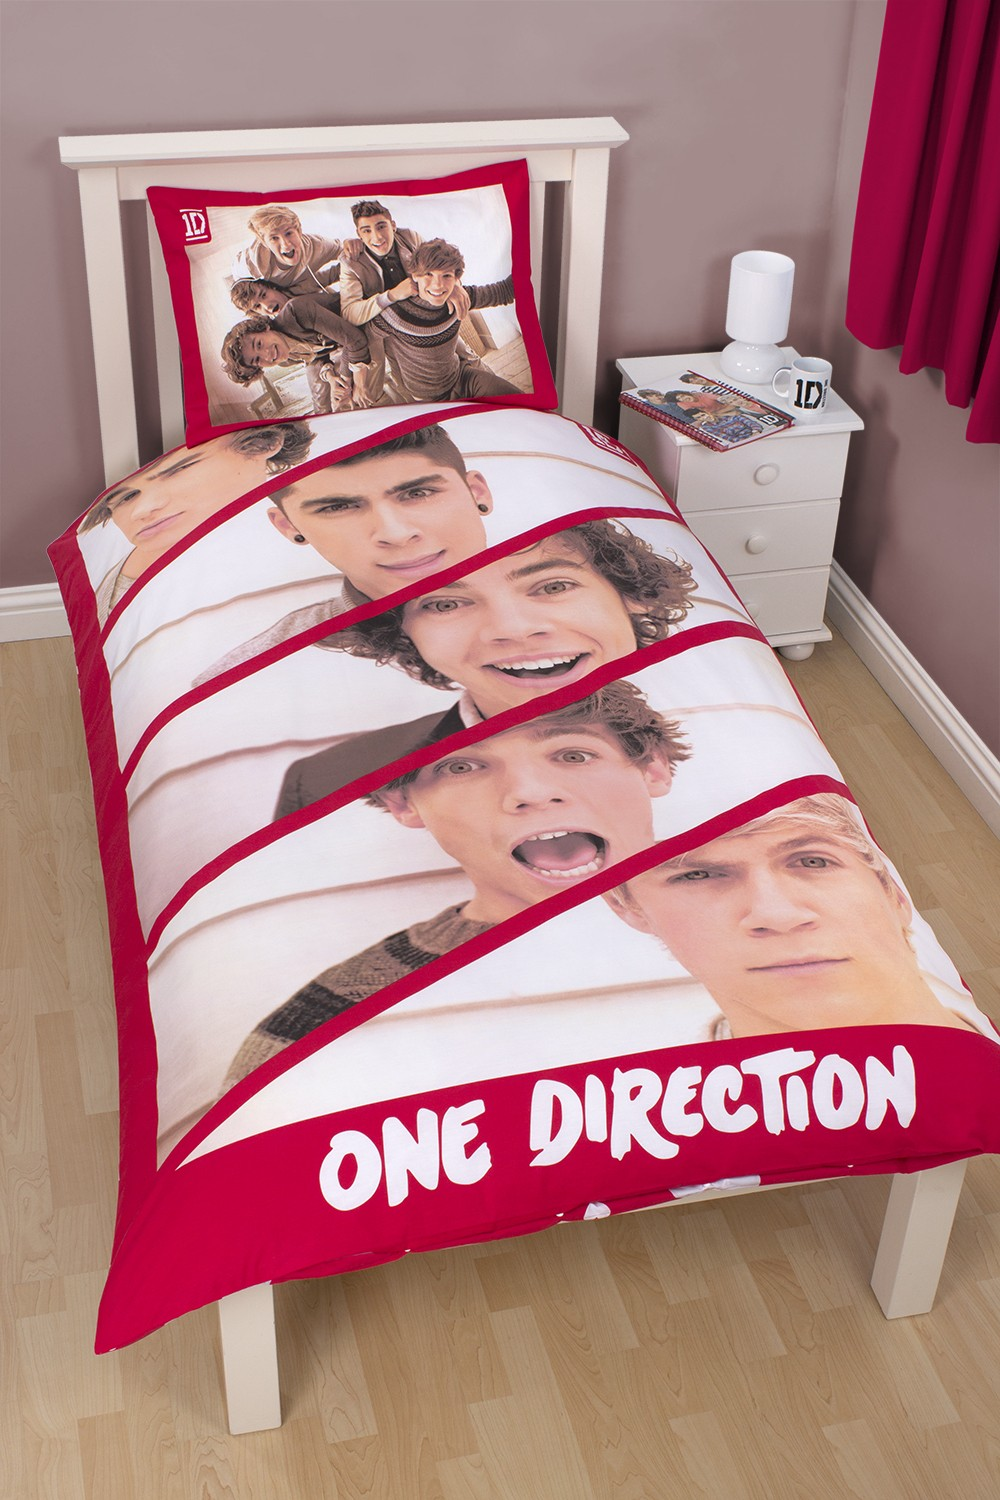 One Direction Wallpaper For Bedroom Giant Wallpaper Wall Mural Official 1d One Direction Bedroom